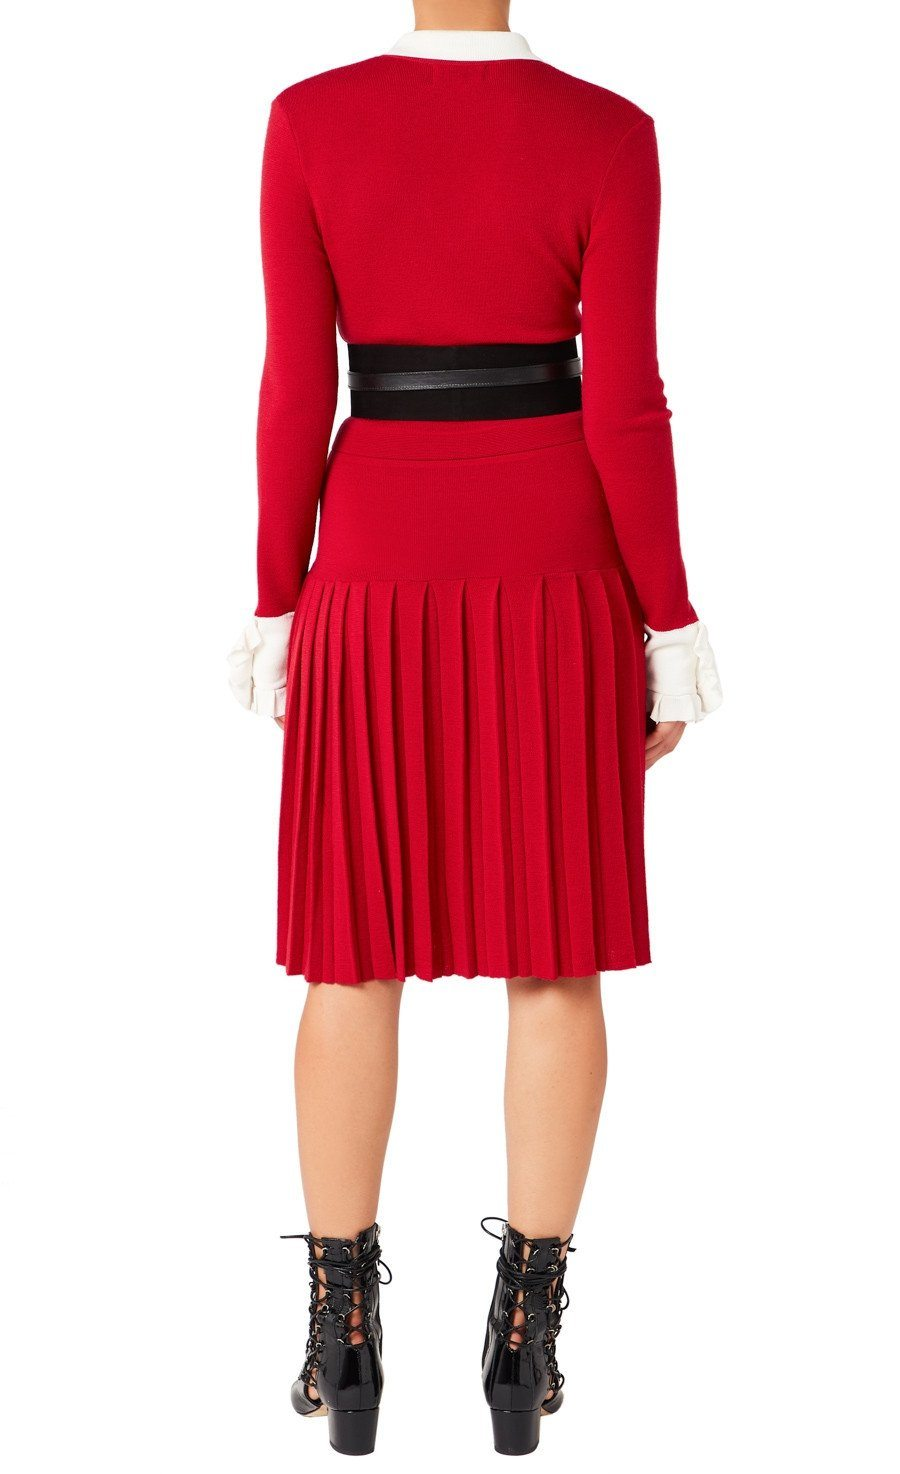 ELSIE PLEATED DRESS